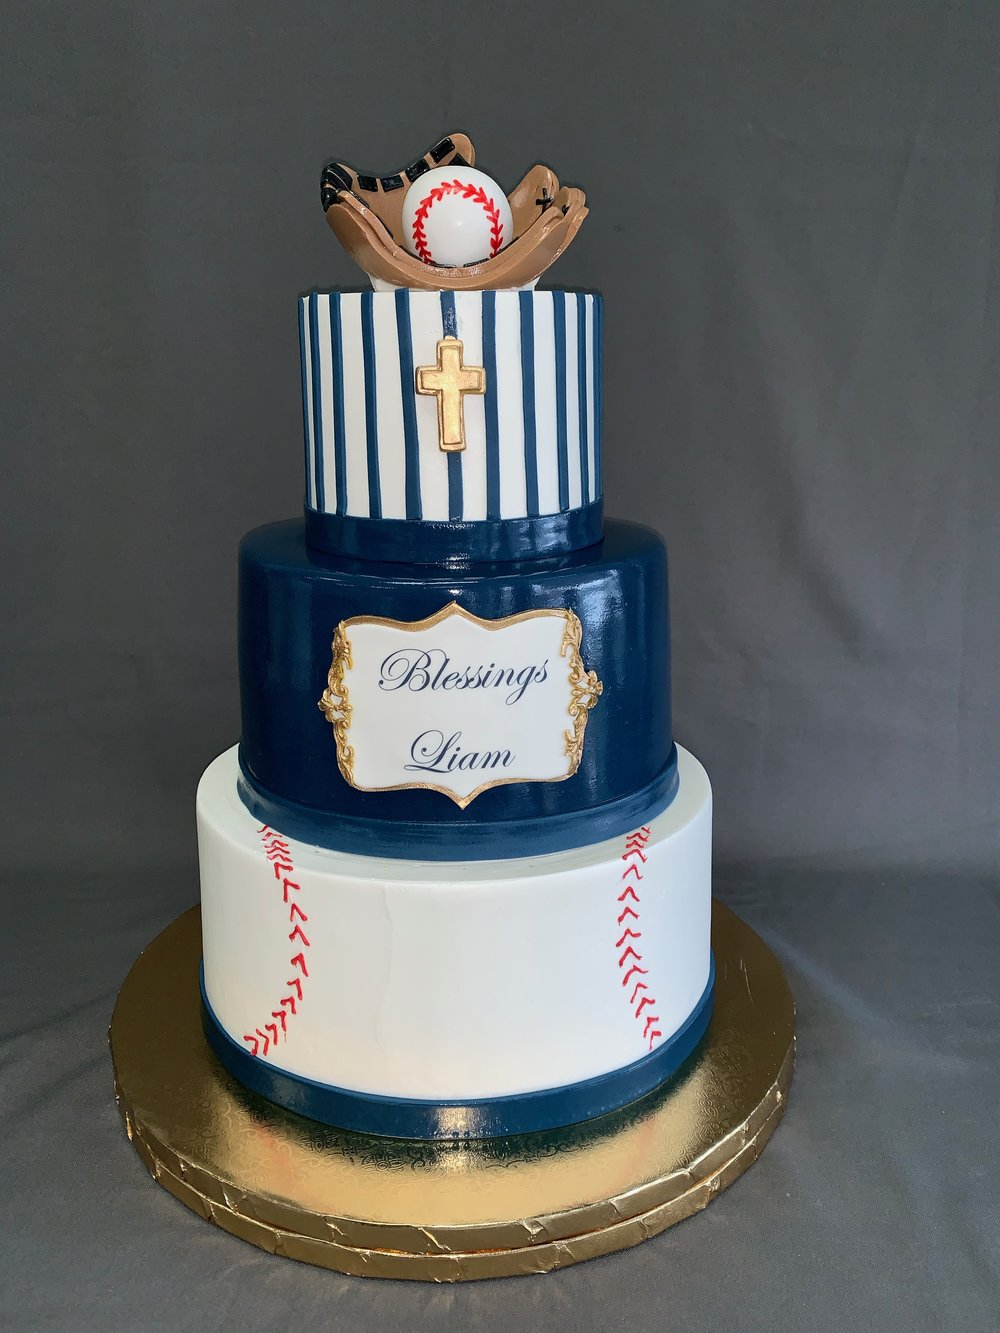 Best Confirmation Cake New Jersey